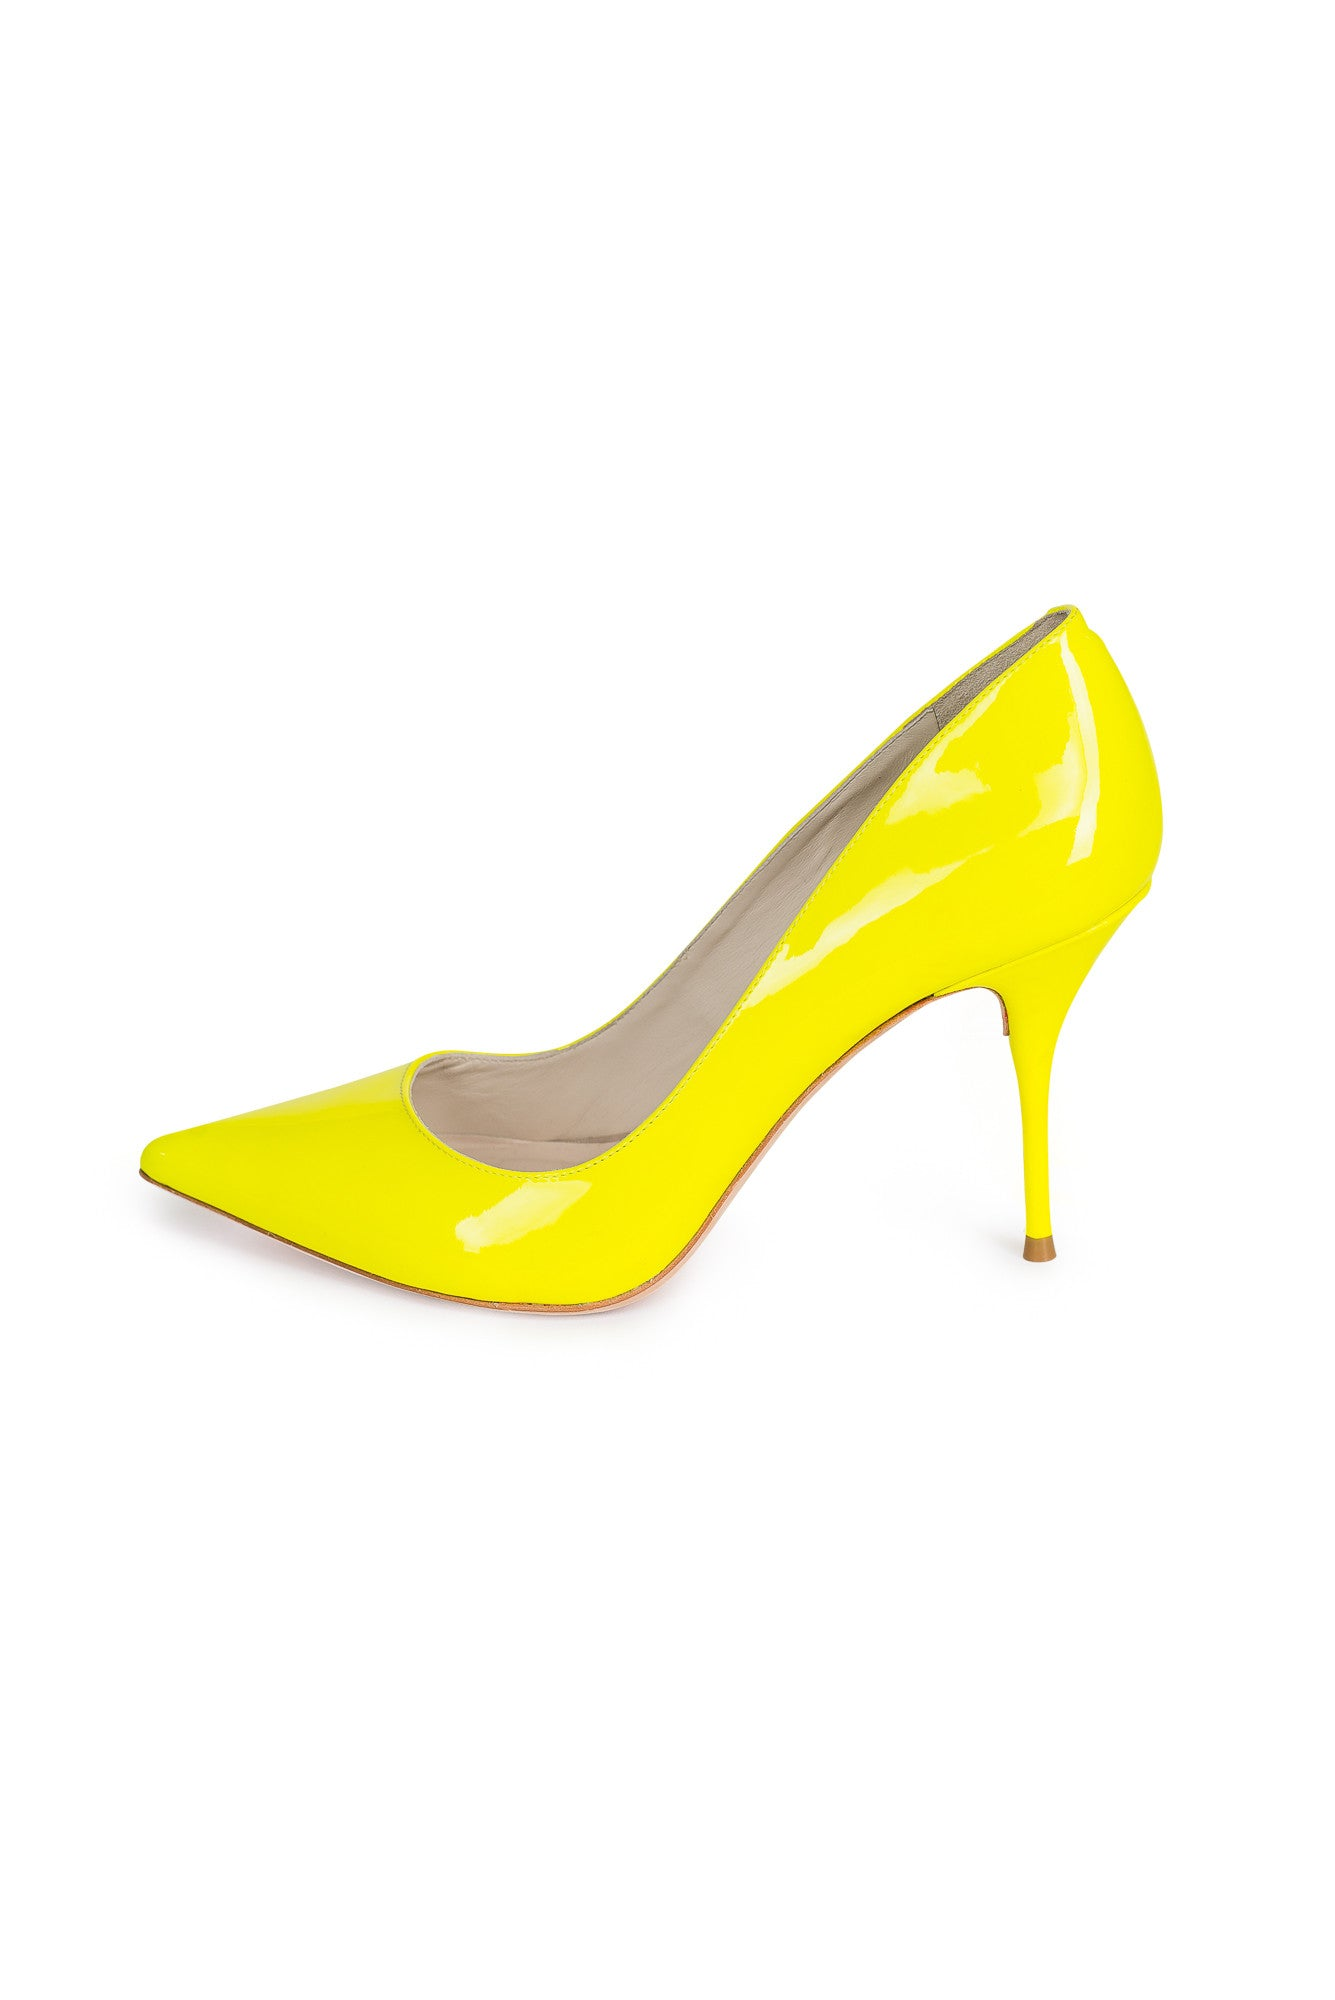 SOPHIA WEBSTER Lola Neon Patent Leather Pumps